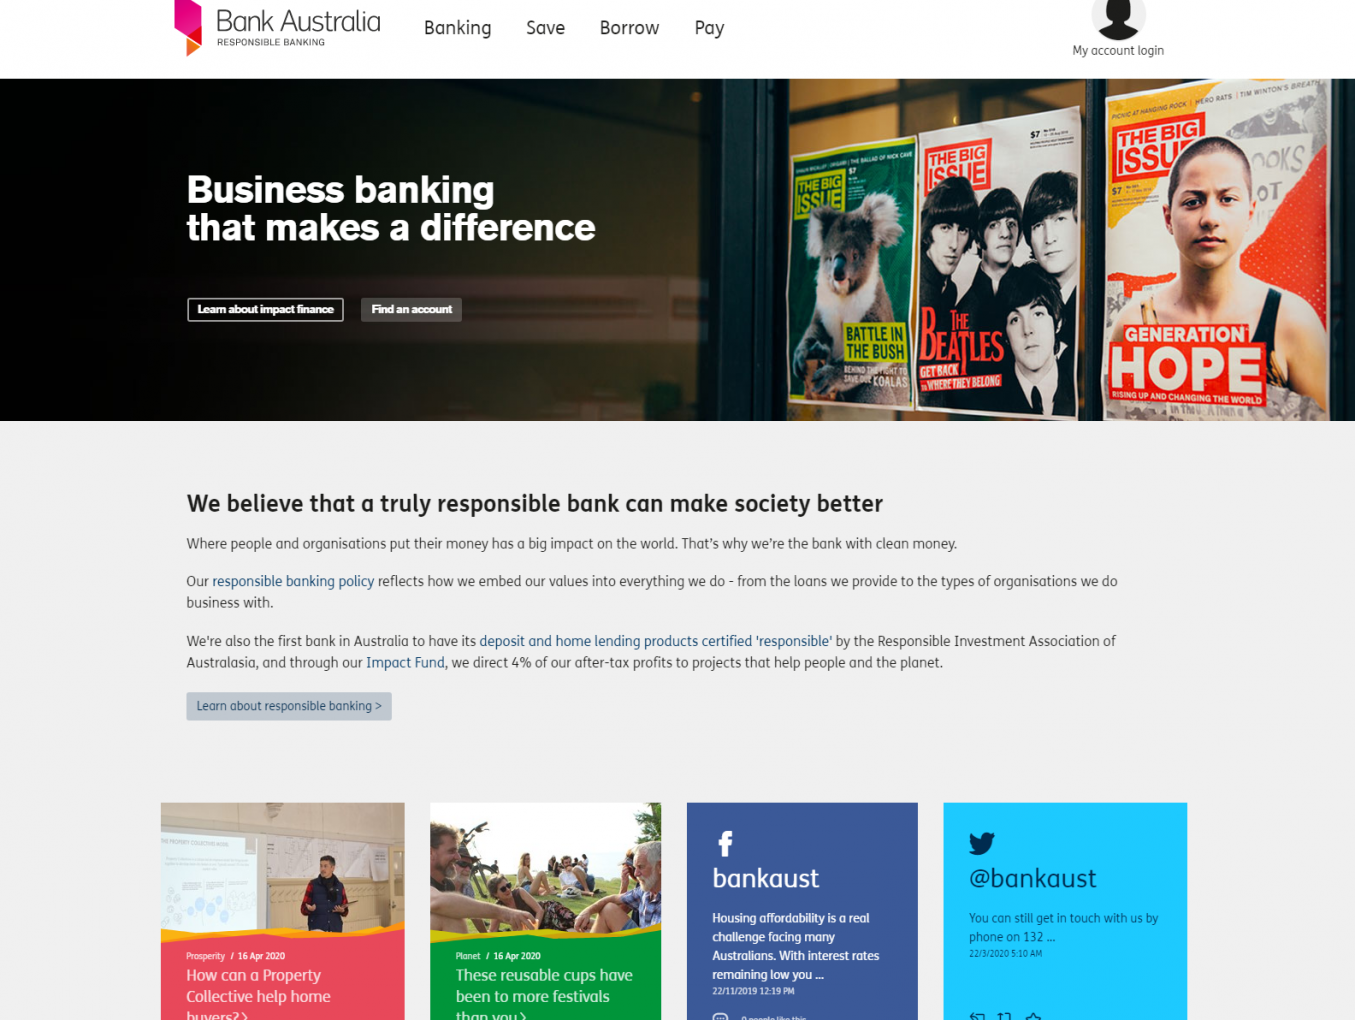 Bank Australia: What's a Property Collective, and how can it help home buyers?